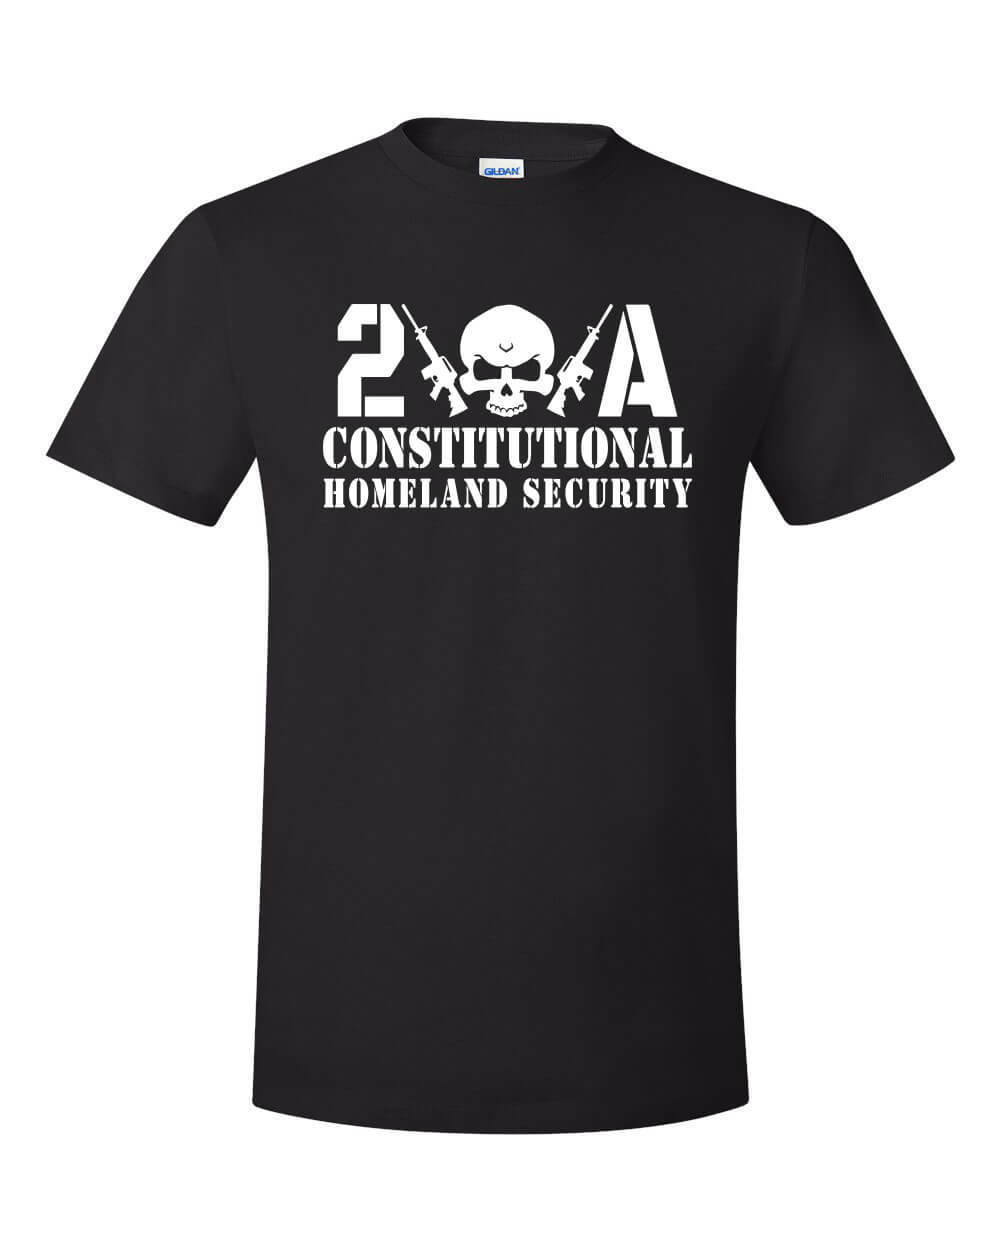 2019 Fashion Summer Style Constitutional Security Shirt NRA Gun Rights Molon Labe Liberty Justice CCW Tee Shirt image